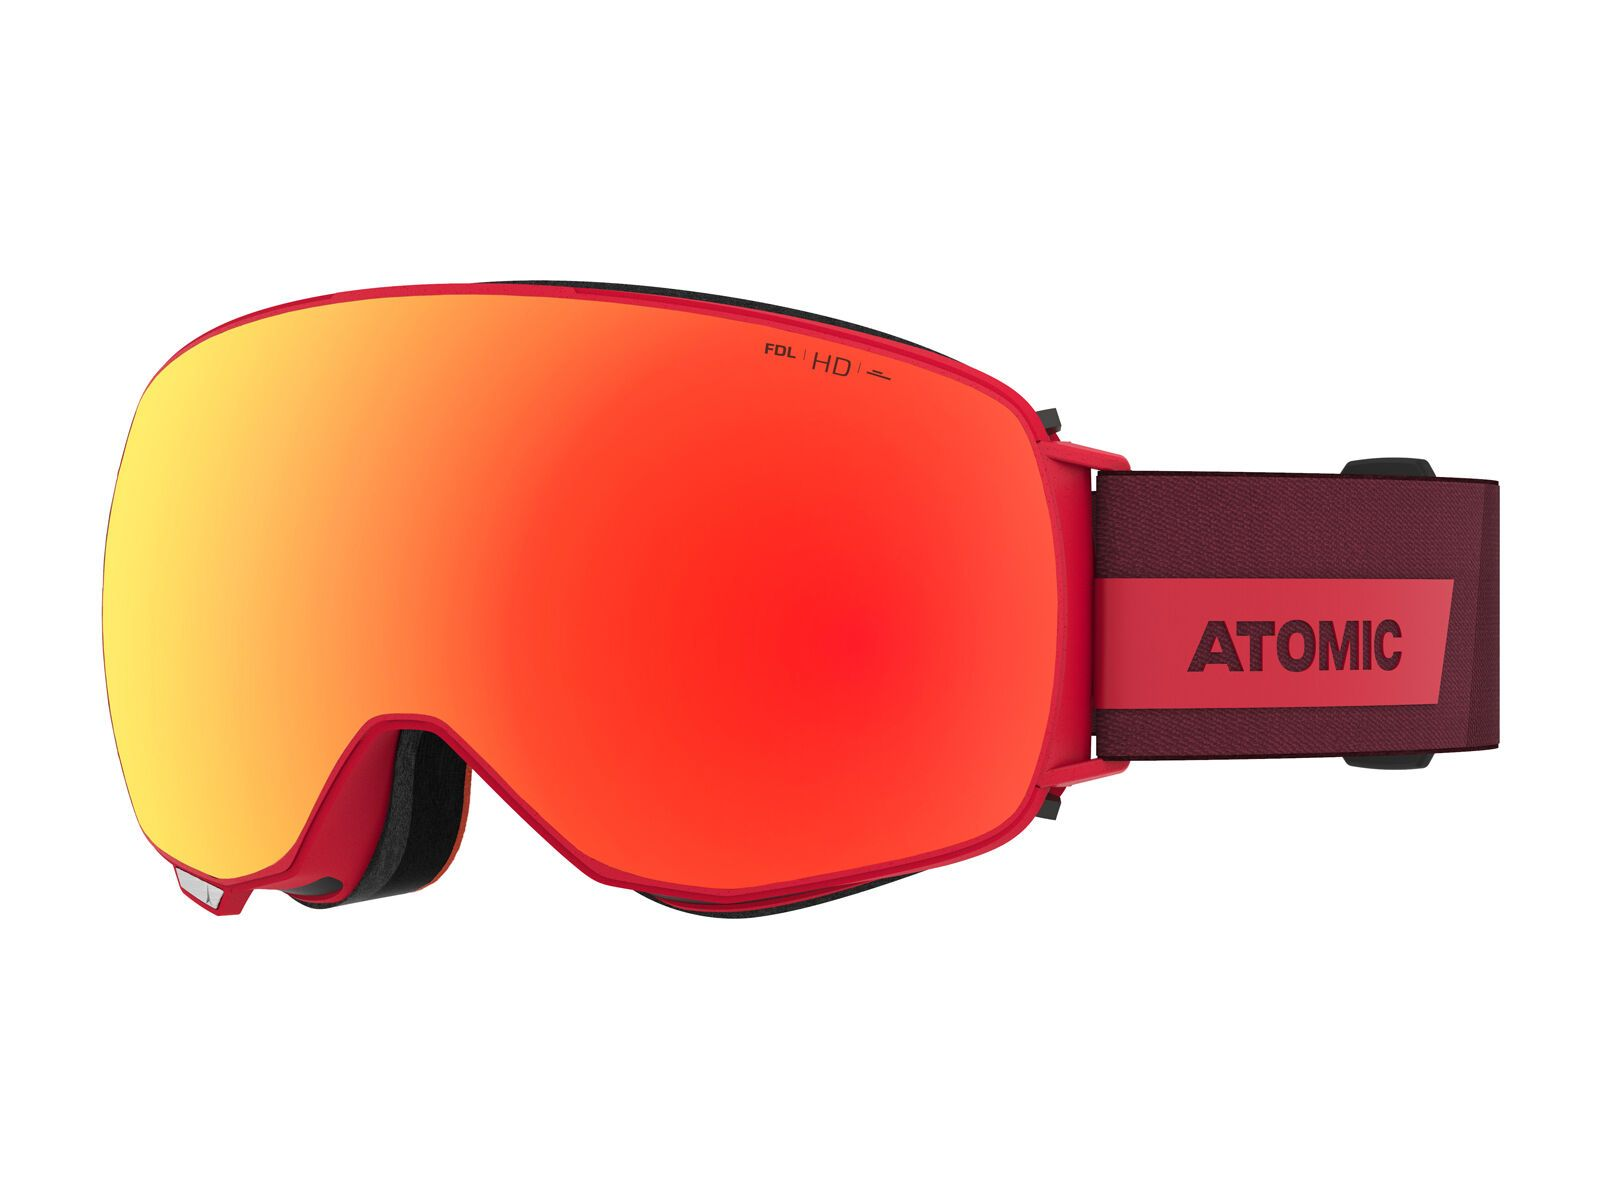 Atomic Revent Q HD inkl. WS, red/Lens: red hd - Skibrille AN5106064